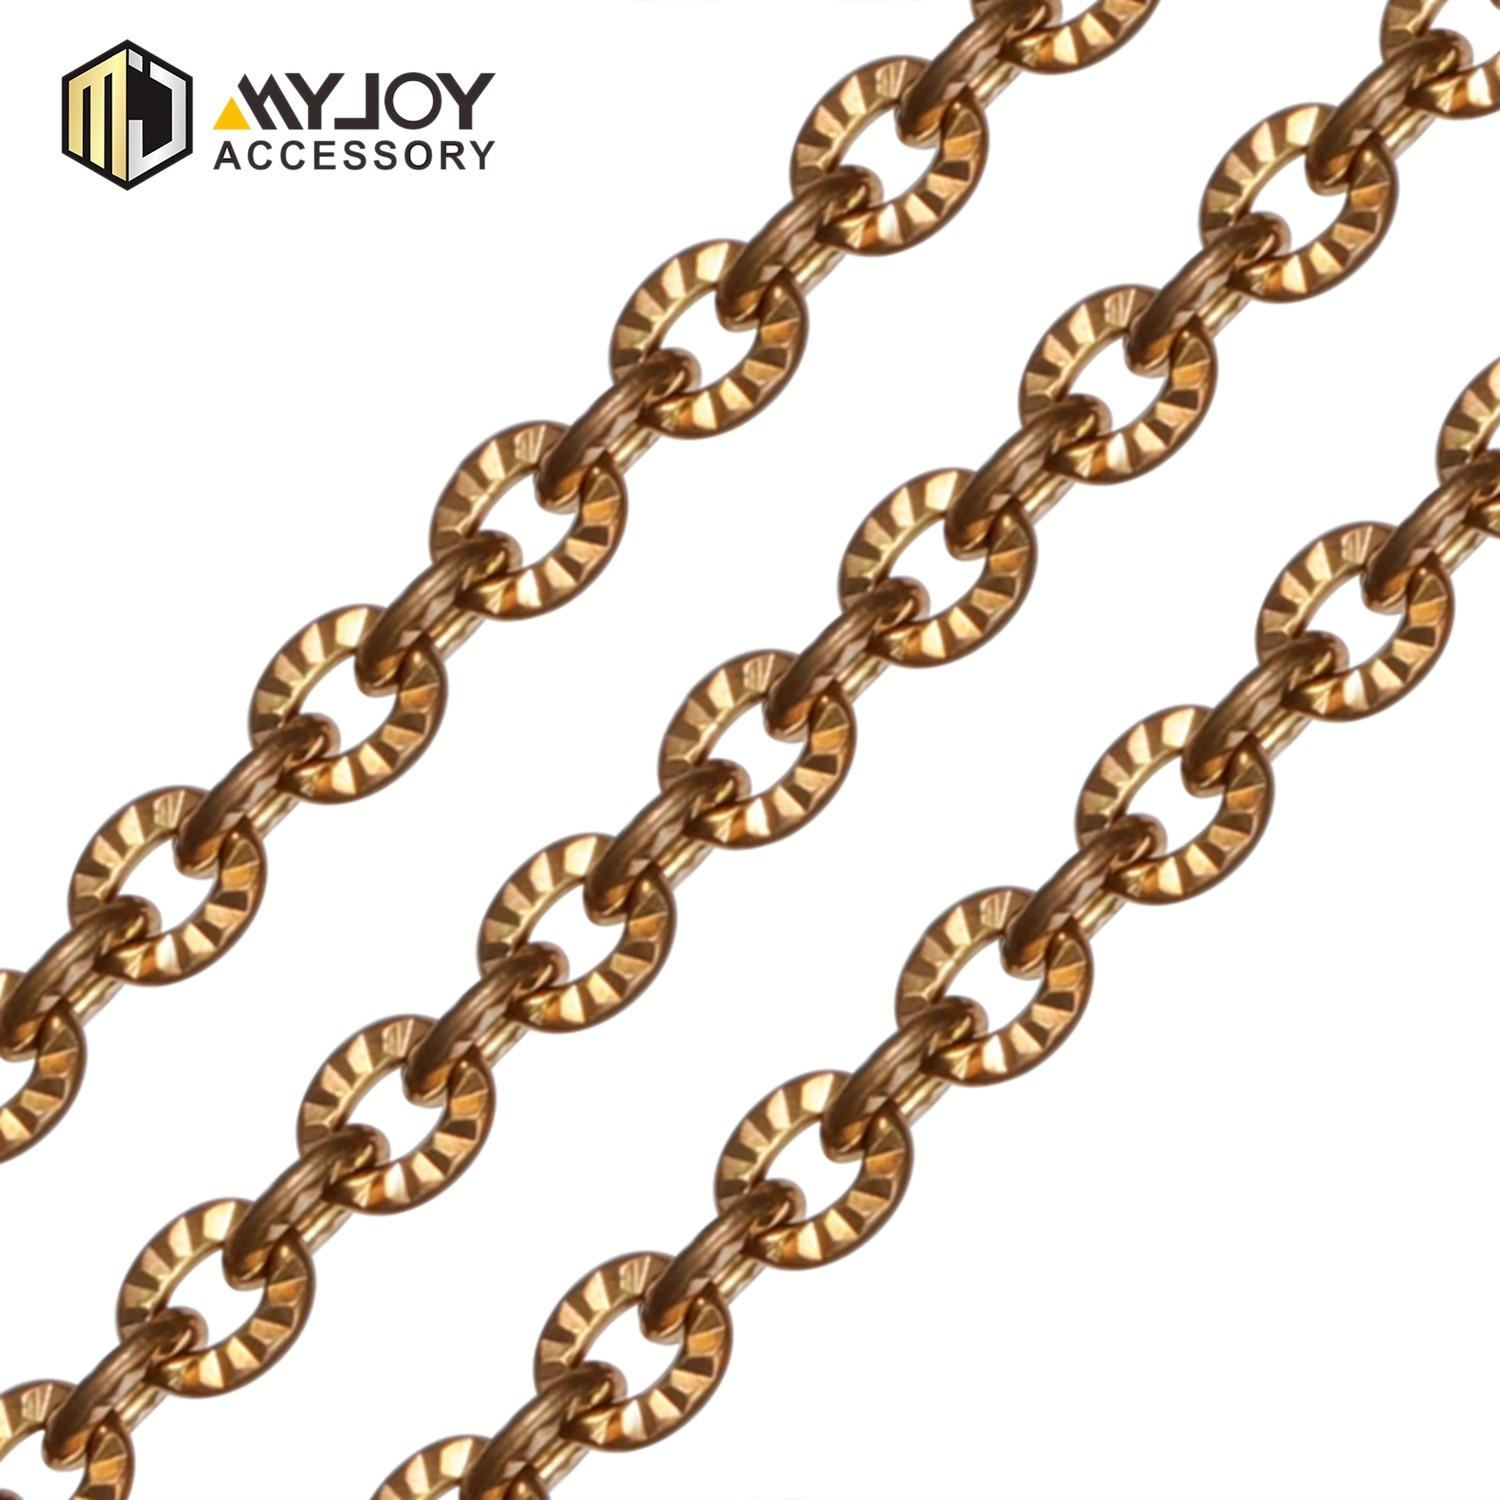 MYJOY handbag chain strap company for bags-3